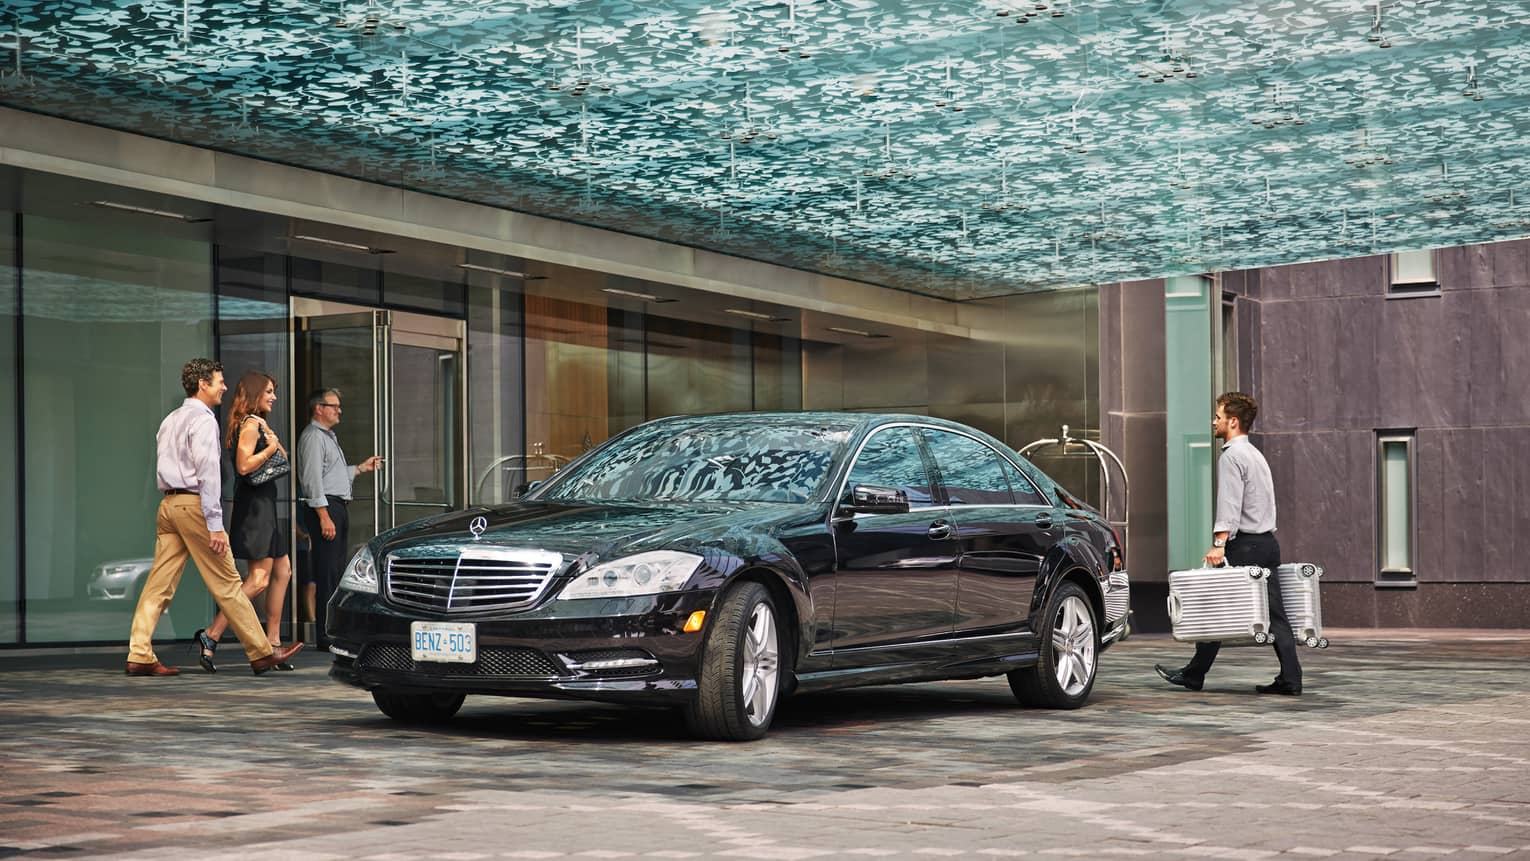 Guests exit through hotel lobby doors to black luxury car, man carries suitcases